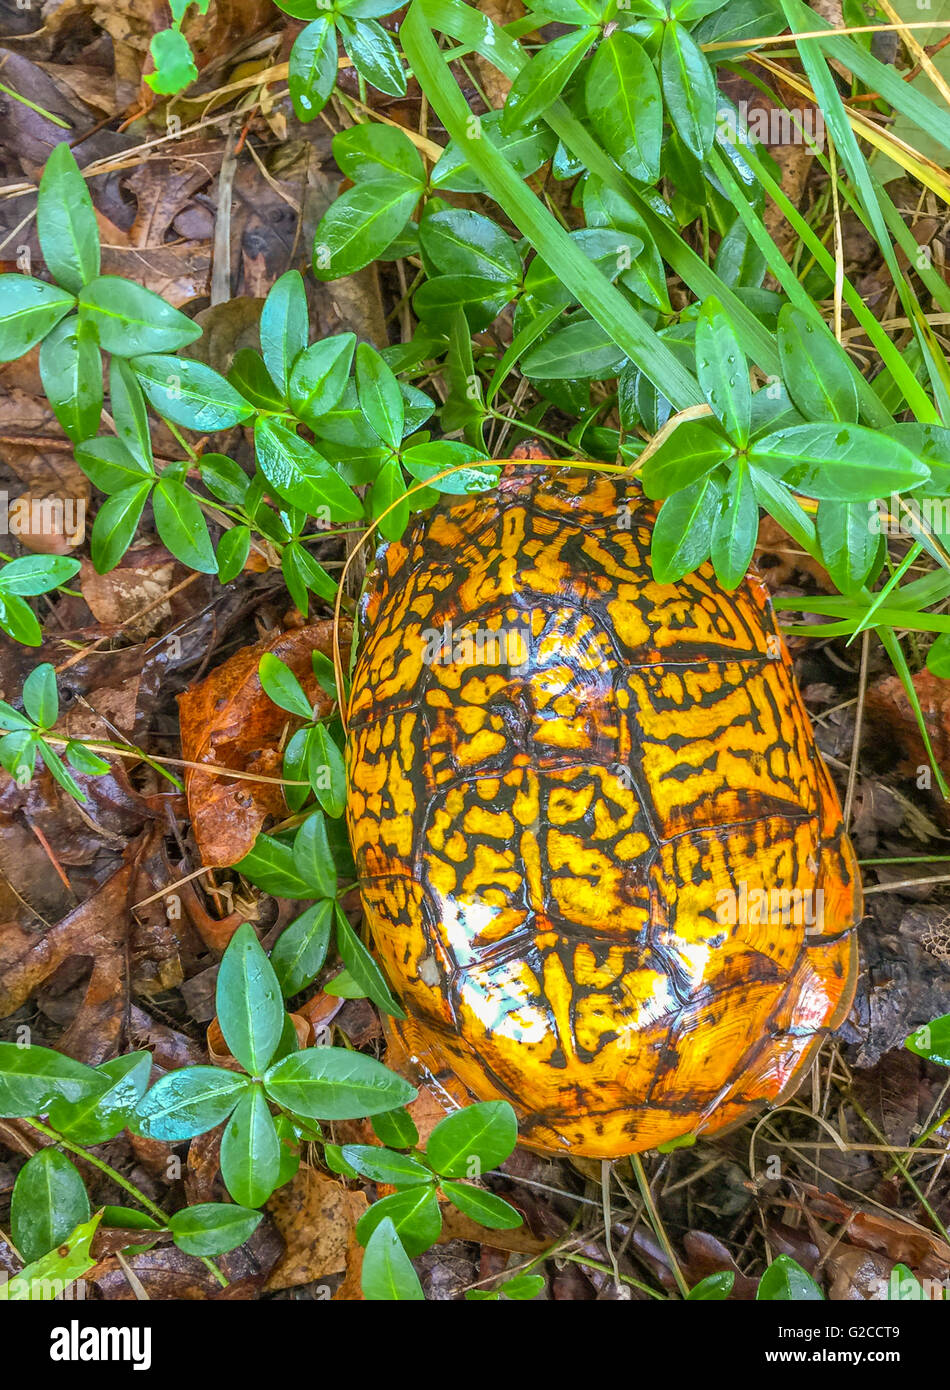 a brilliant colored box turtle or terrapene in some wet underbrush - Stock Image